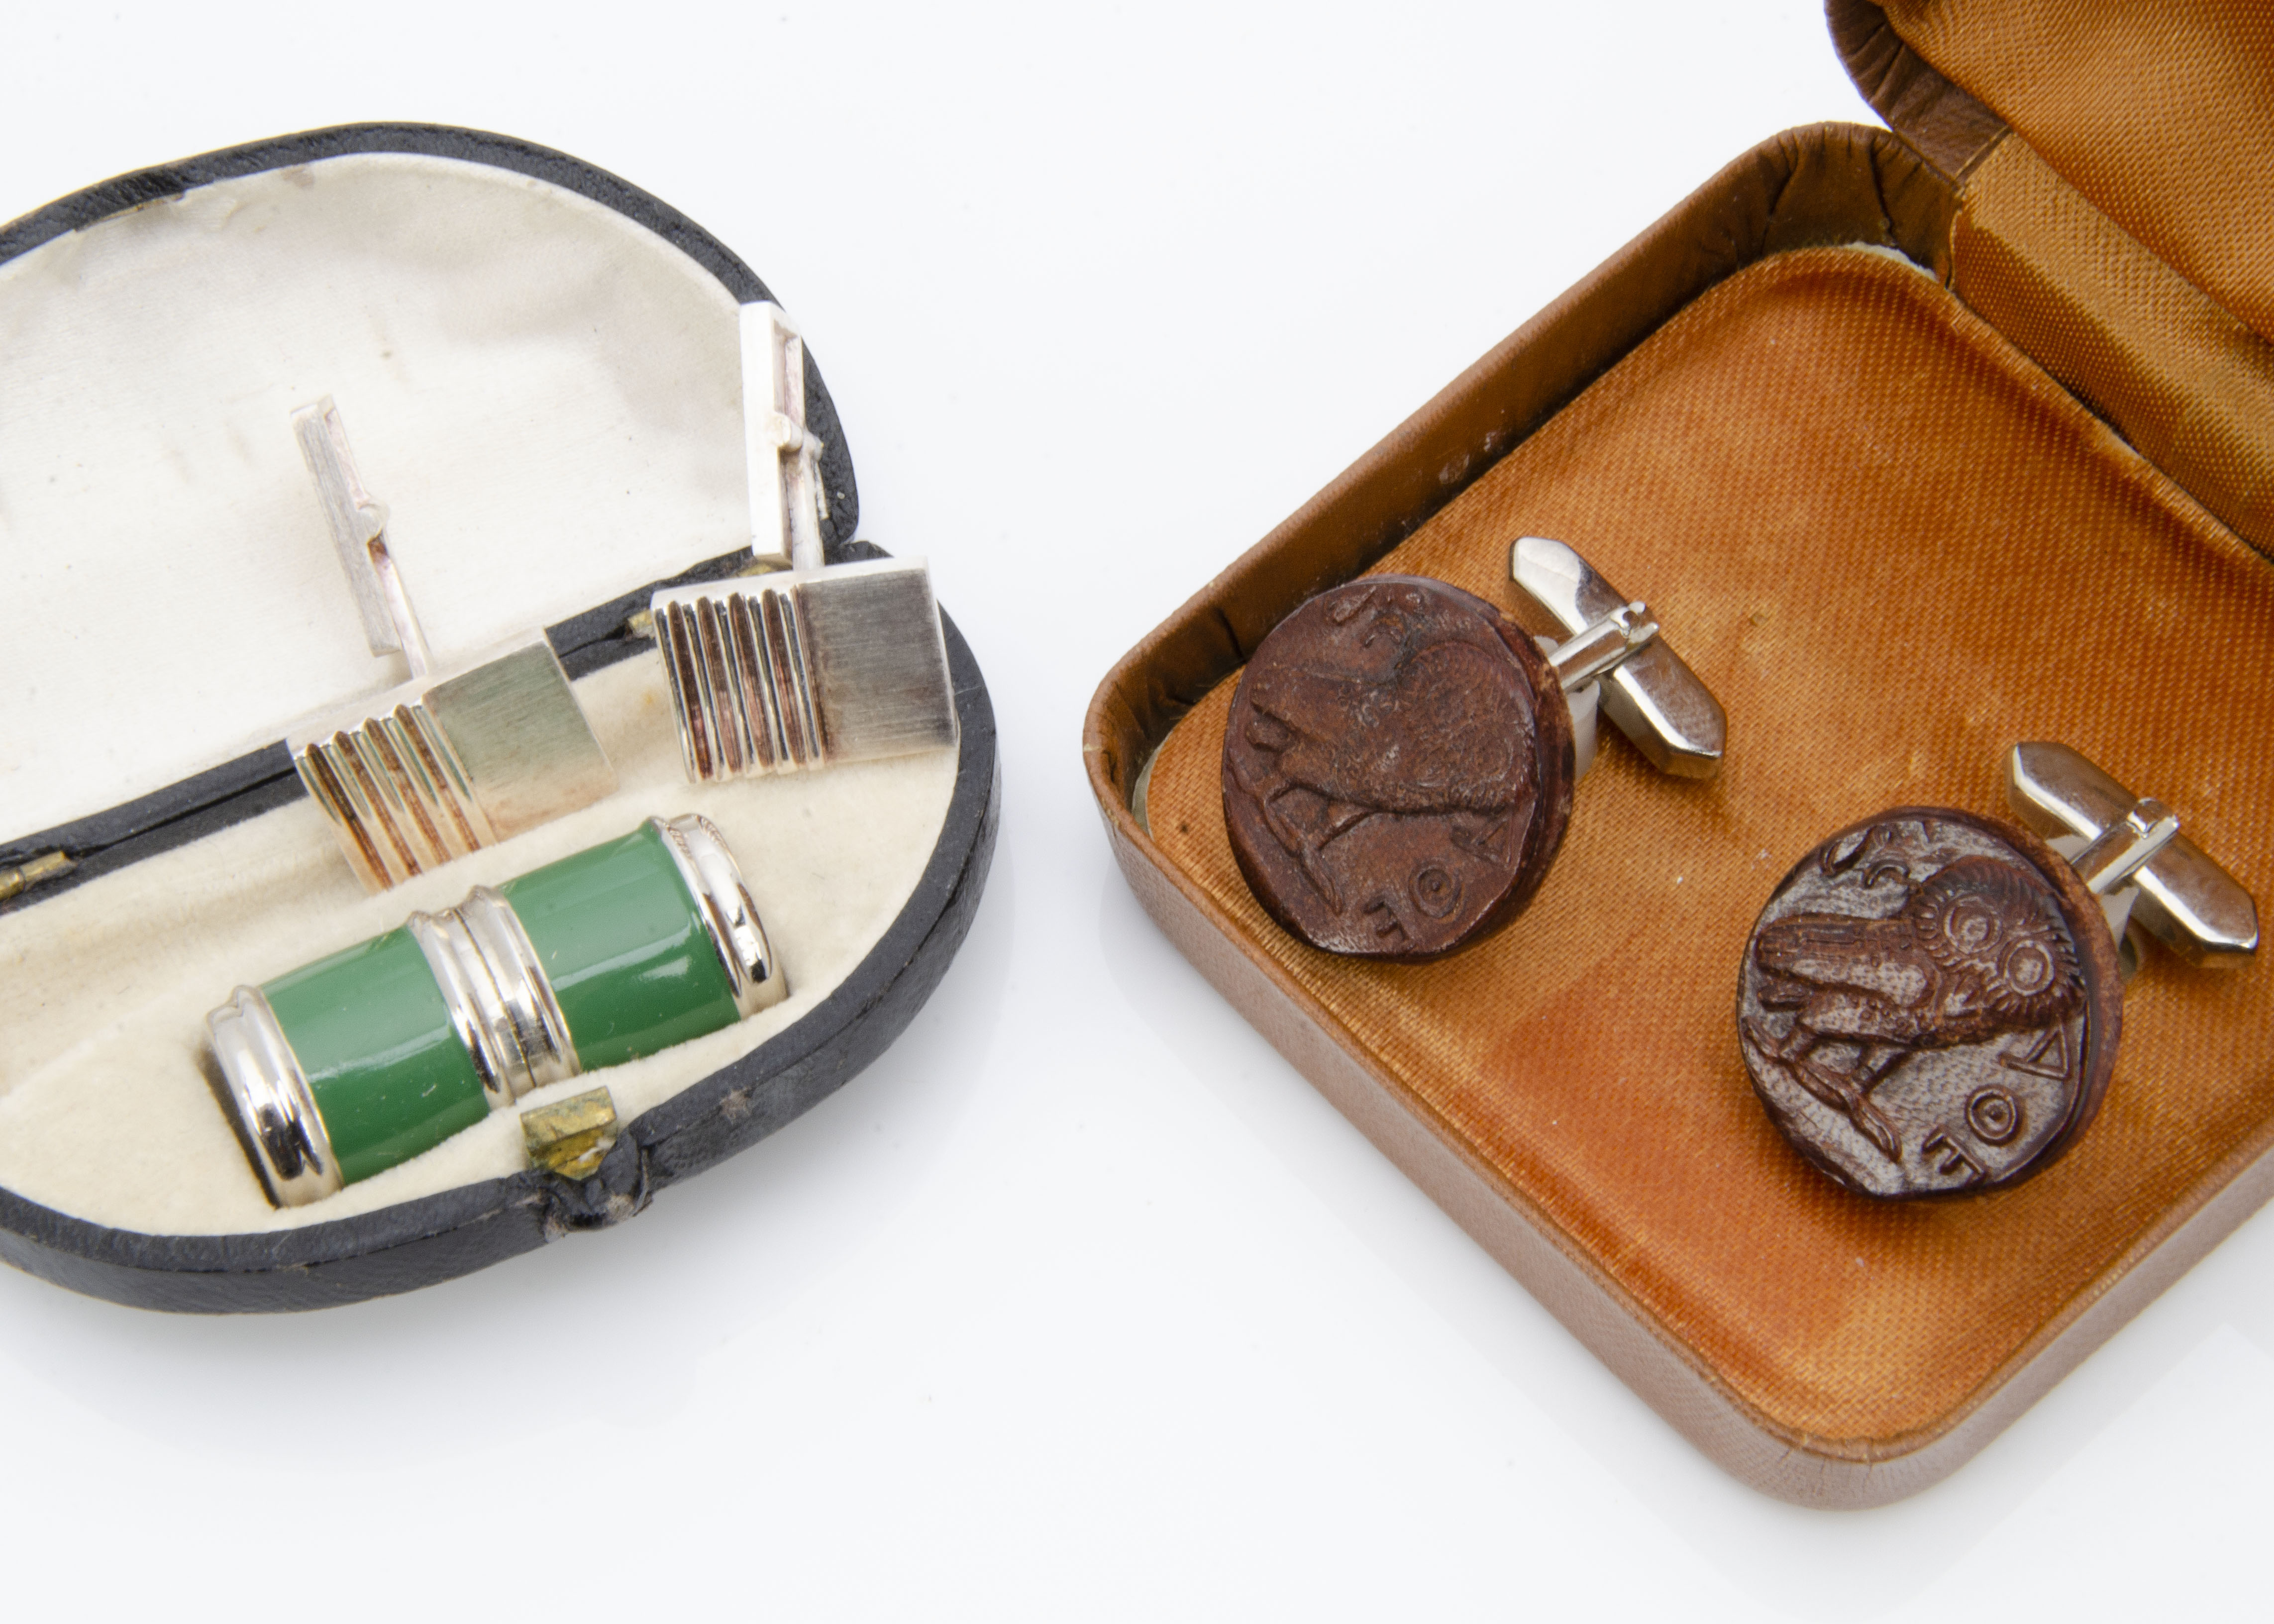 Lot 252 - A pair of silver contemporary cufflinks, a pair of leather and chromed stainless steel cufflinks and